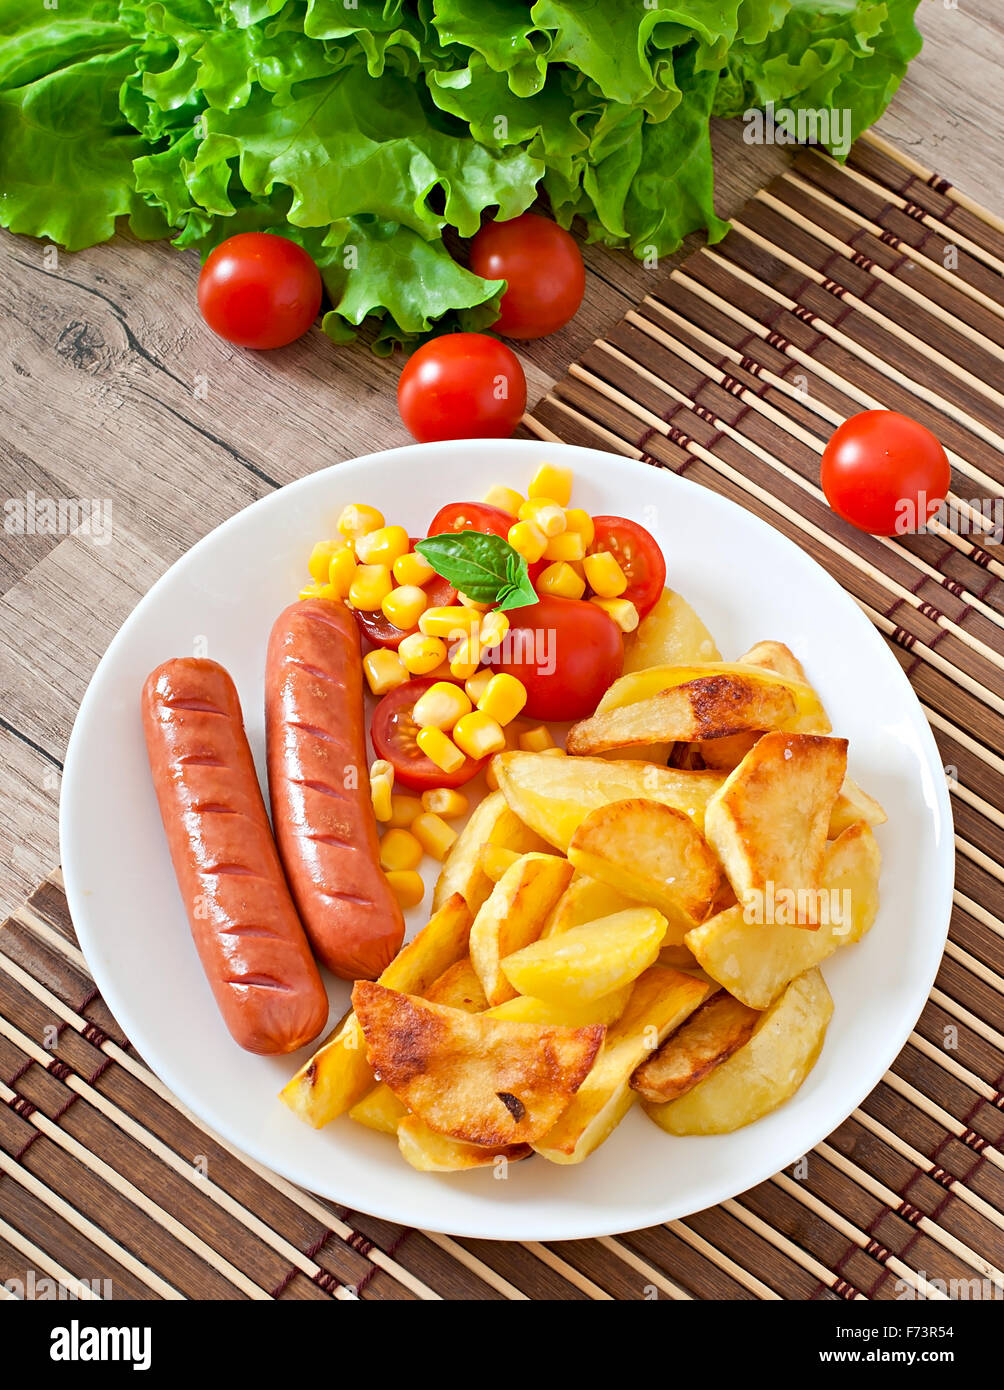 Sausage with fried potatoes and vegetables on a plate - Stock Image